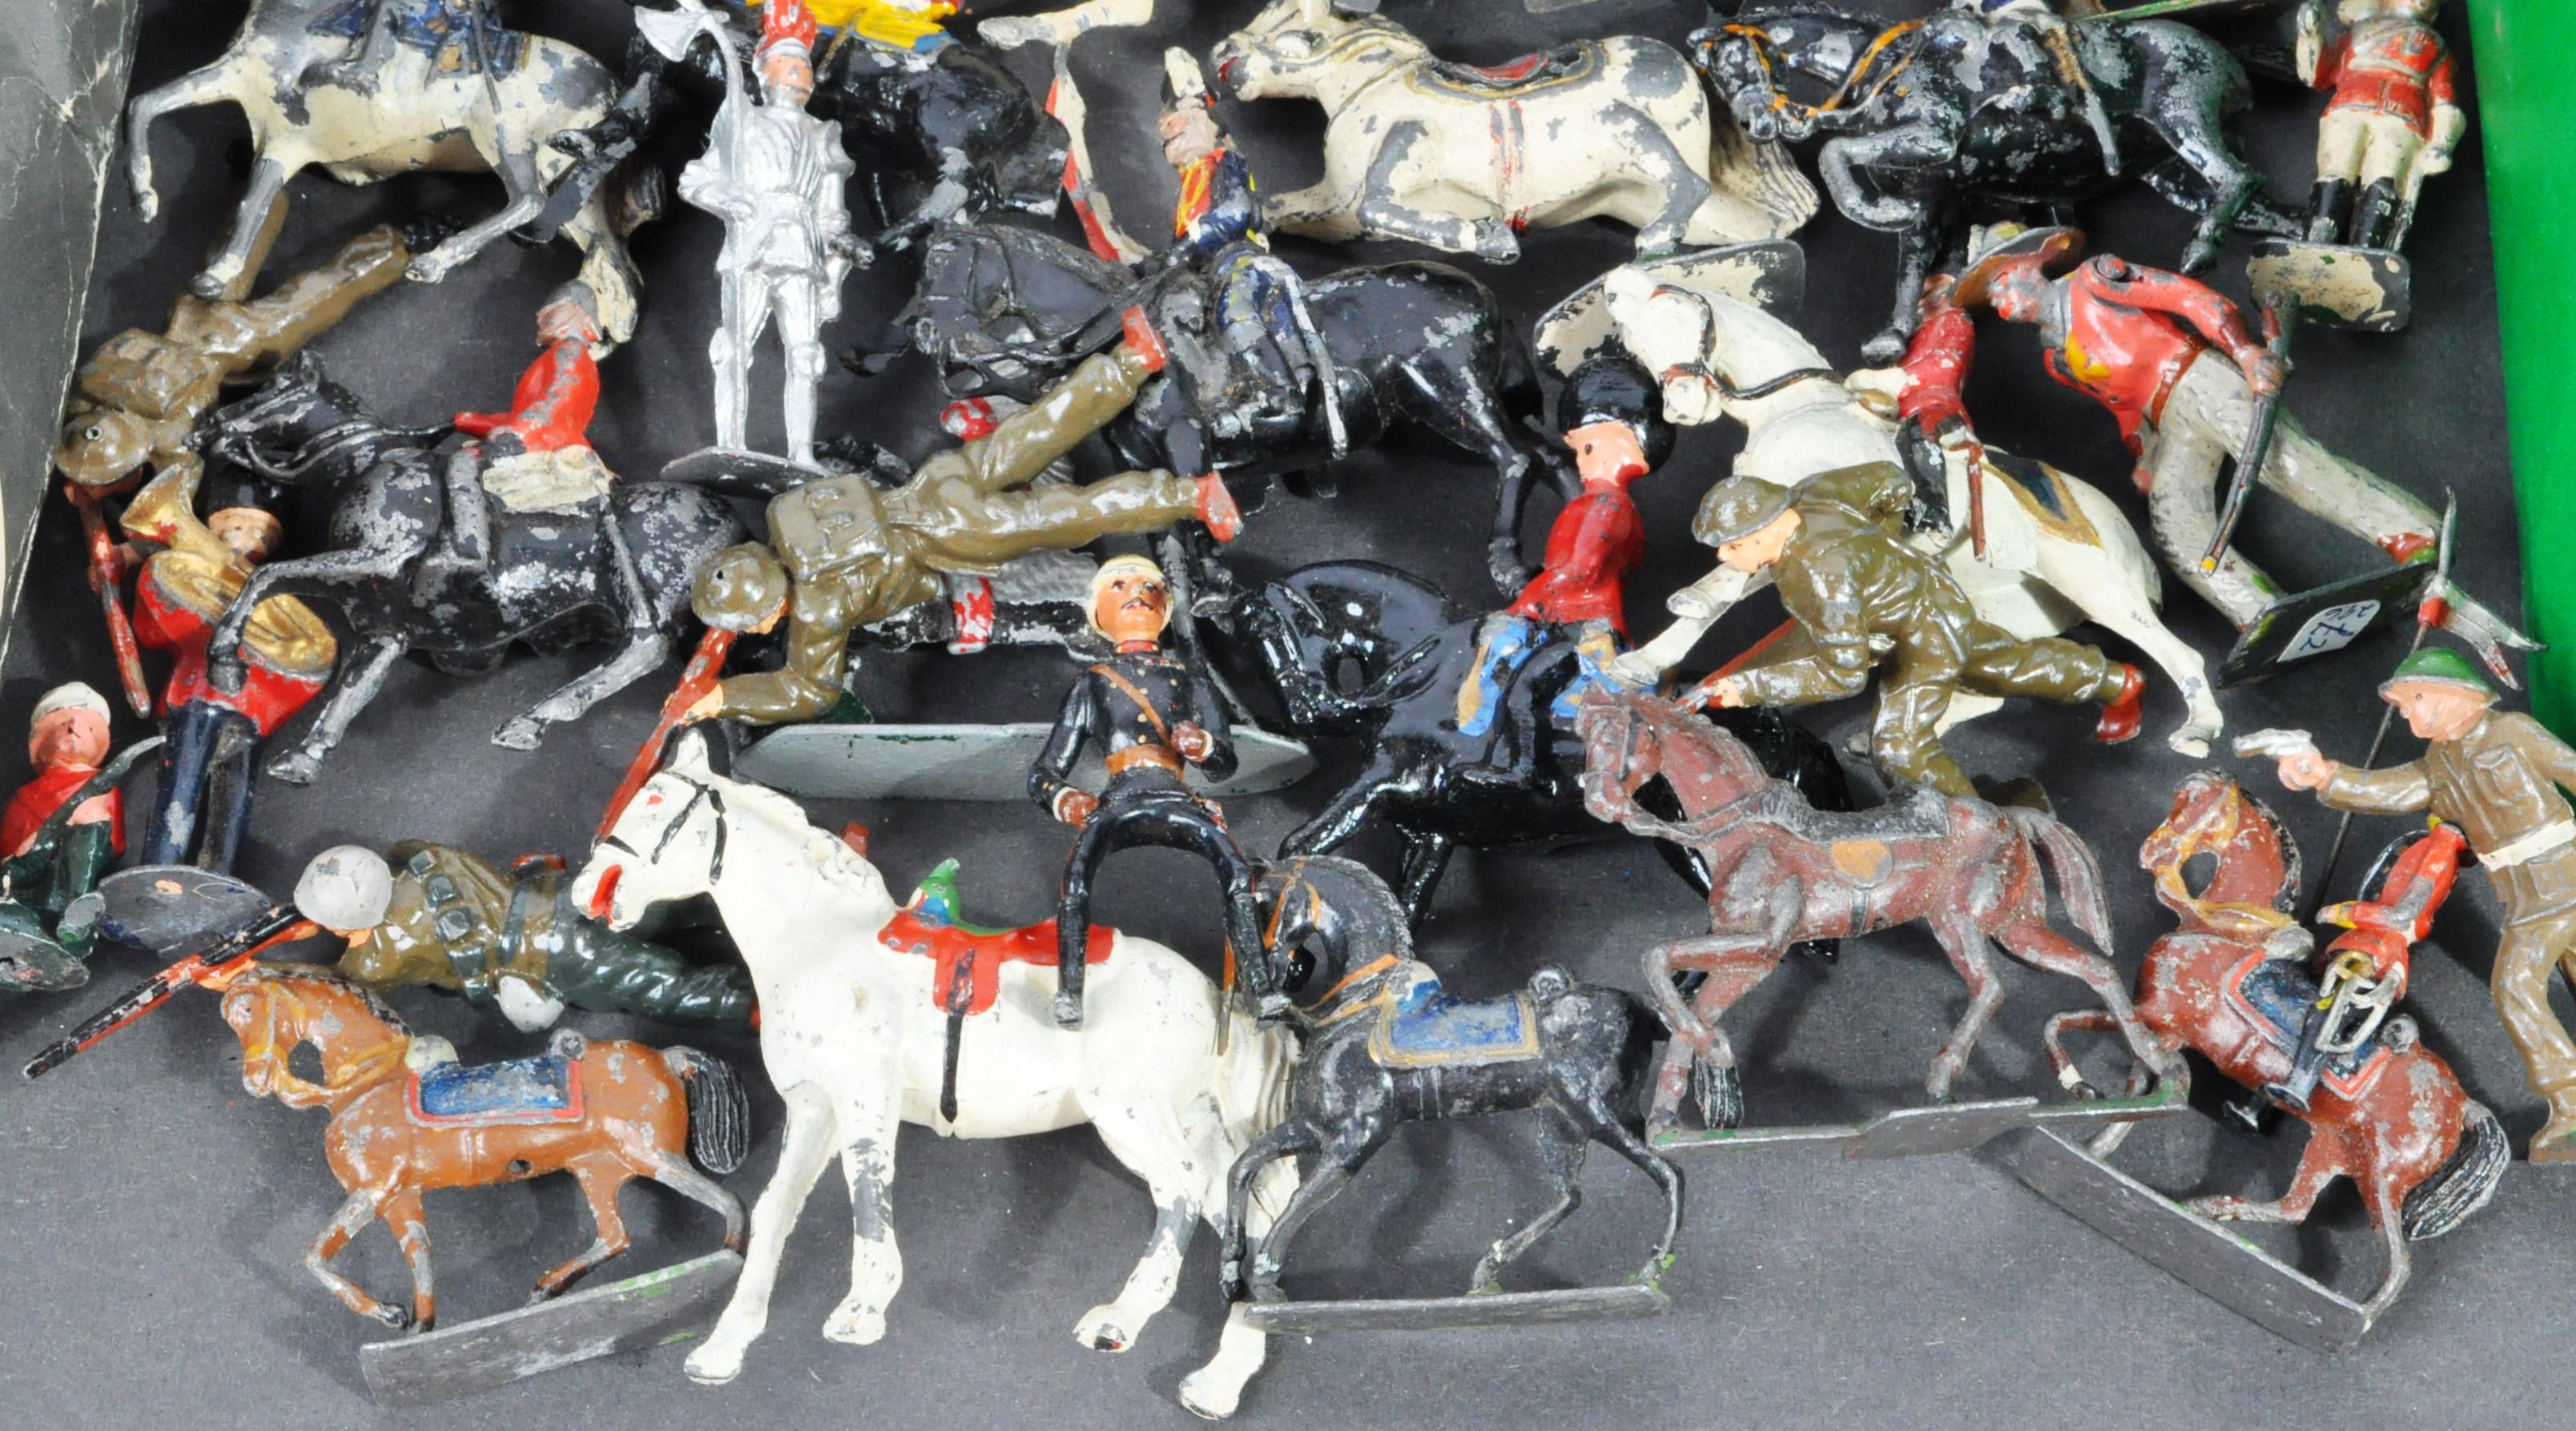 LEAD SOLDIERS - LARGE COLLECTION OF VINTAGE LEAD SOLDIERS - Image 3 of 7